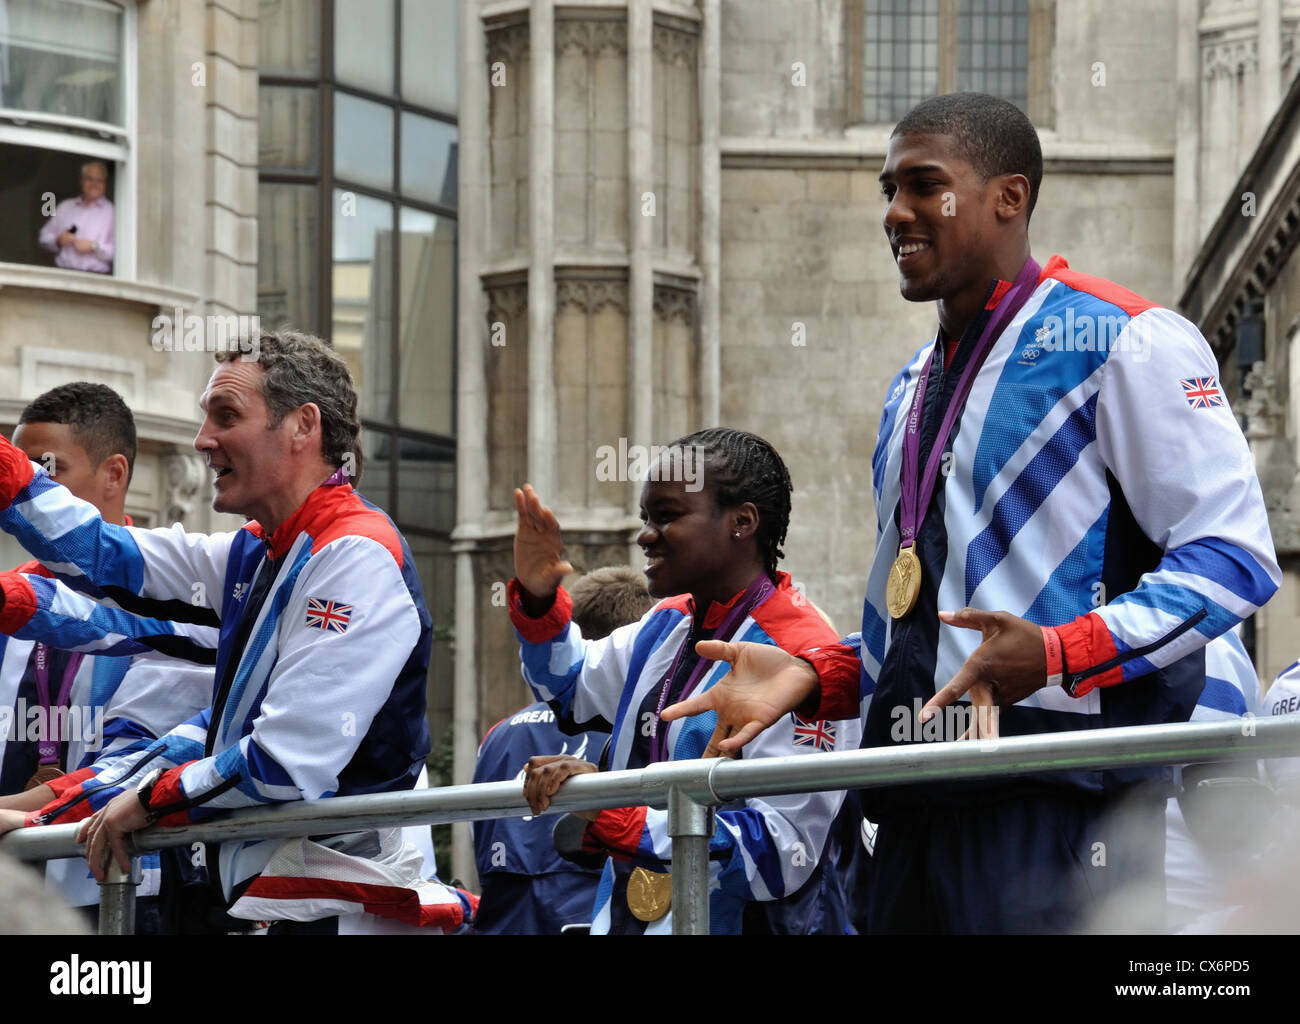 Lee Pullen (coach), Nicola Adams, Anthony Joshua. Boxing.  The London 2012 Medal Winners Parade. - Stock Image